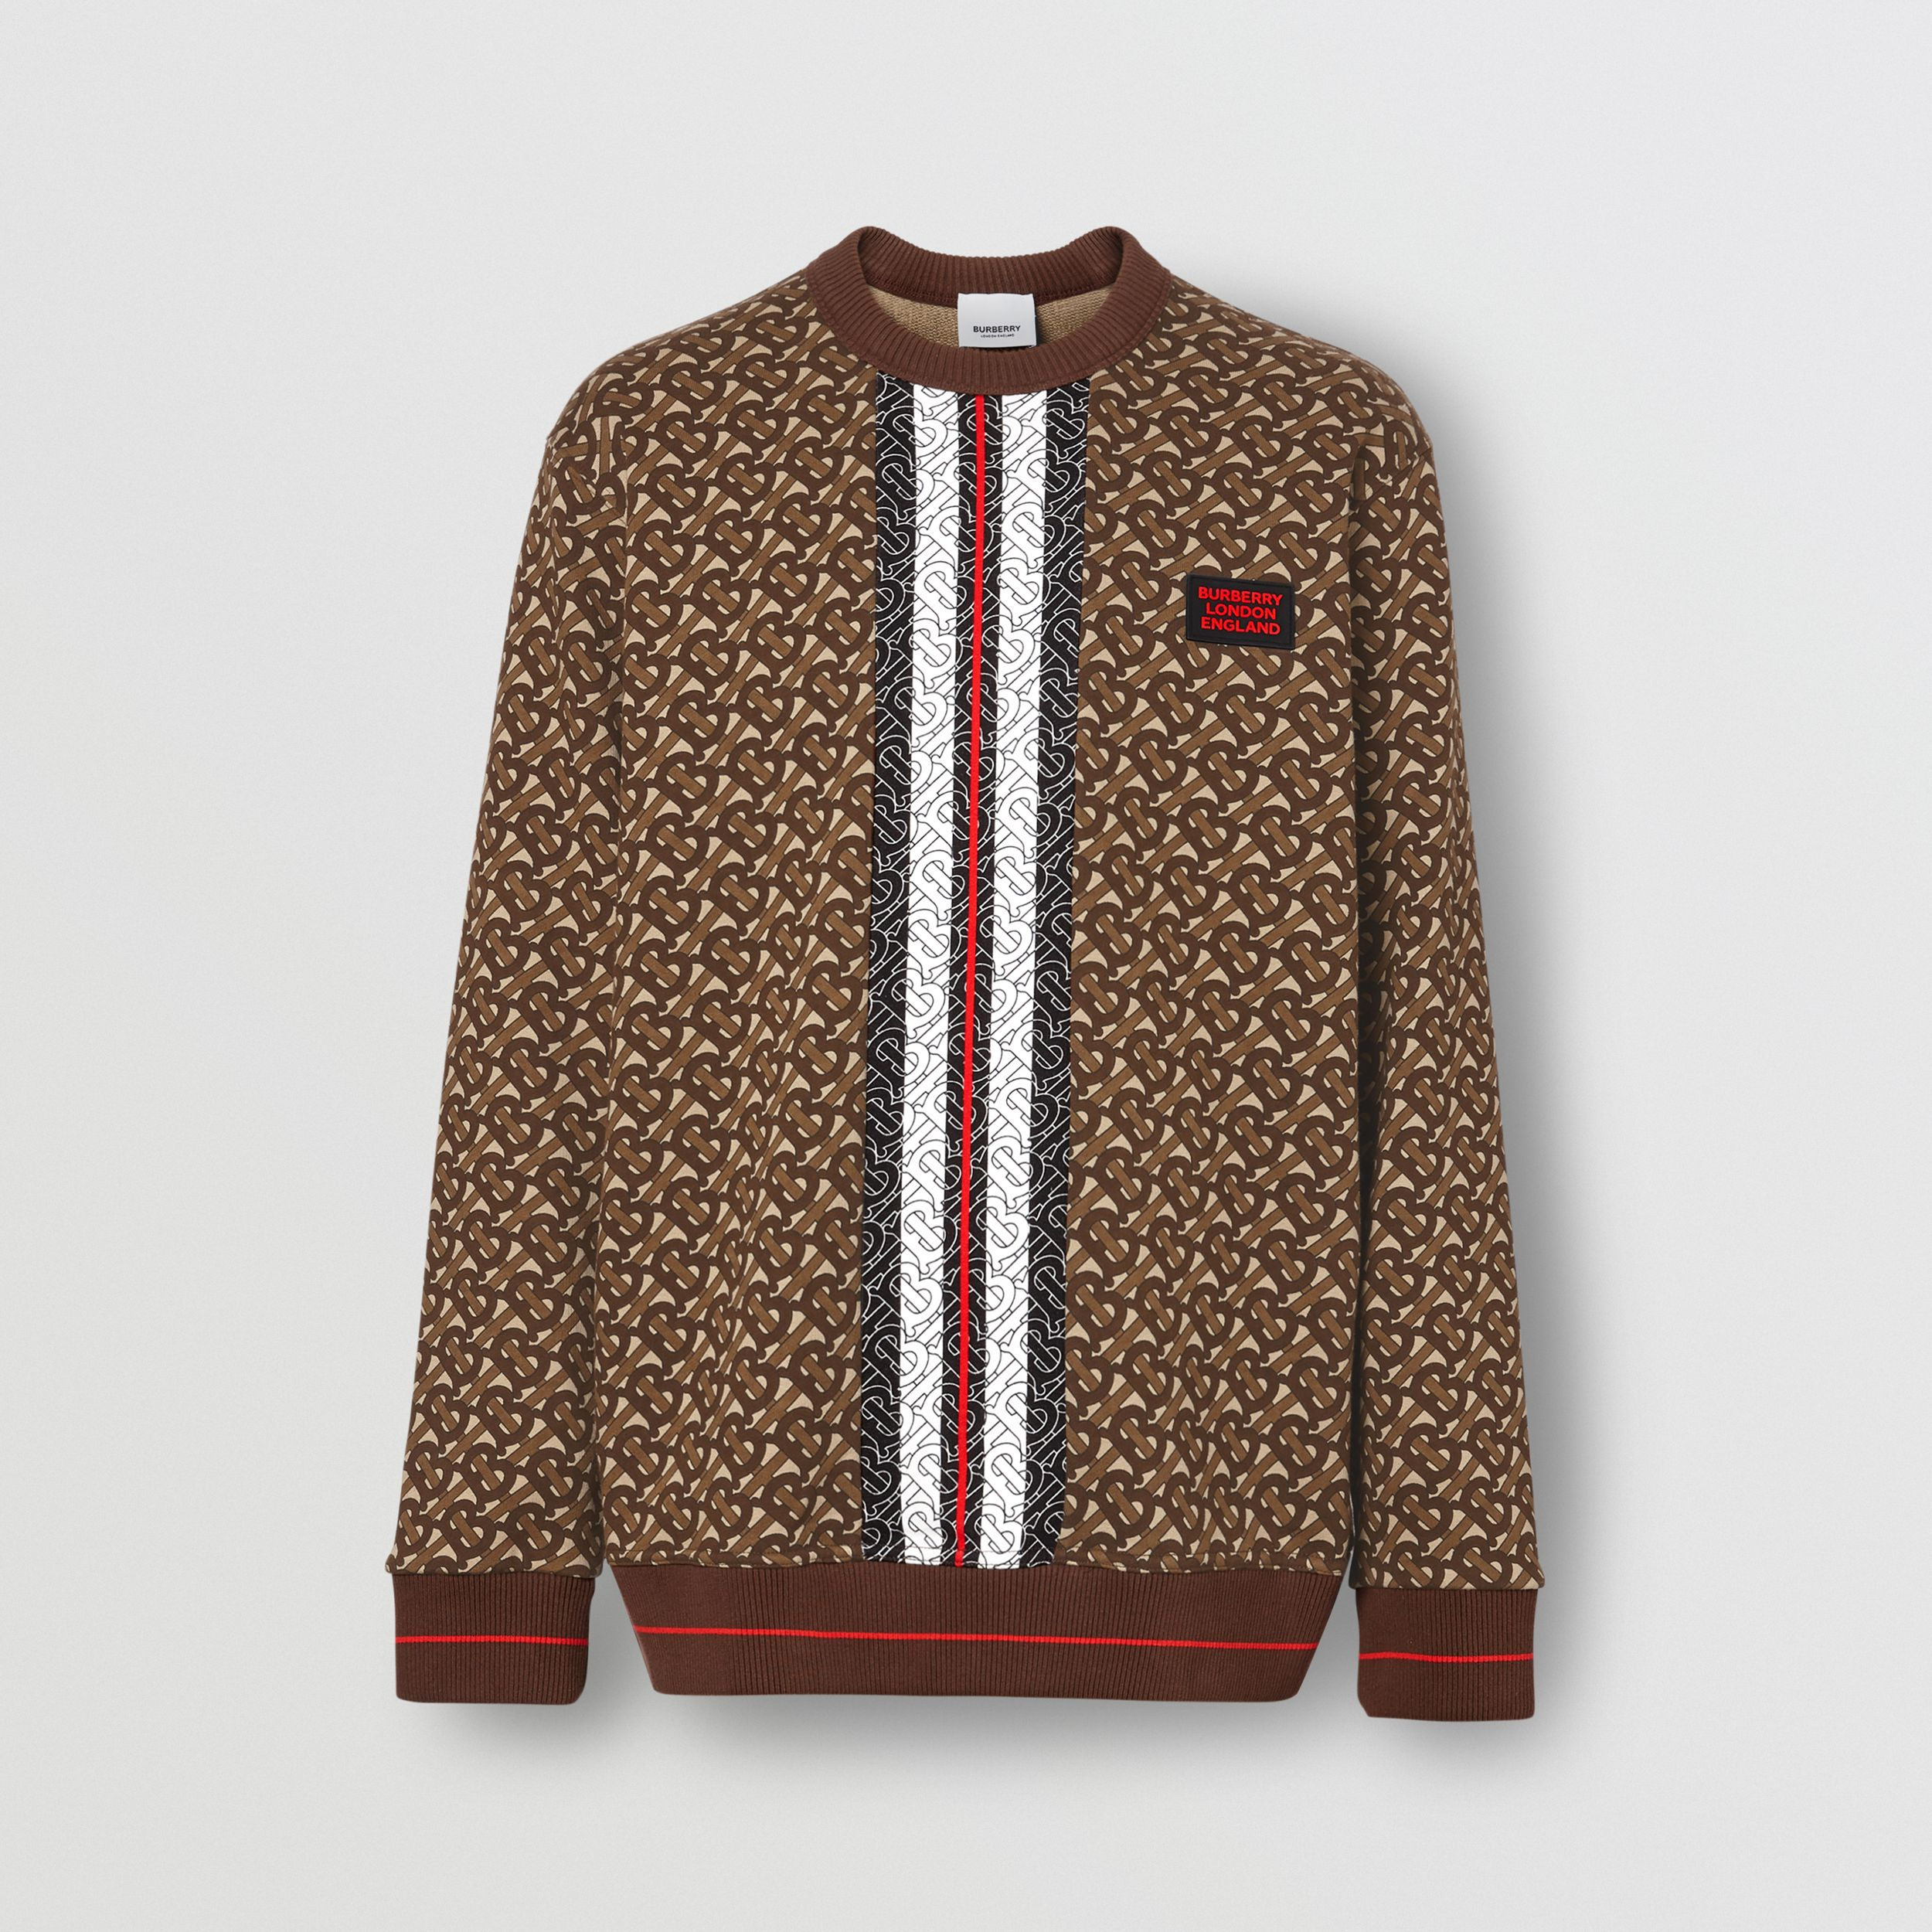 Monogram Stripe Print Cotton Sweatshirt in Bridle Brown - Men | Burberry - 4